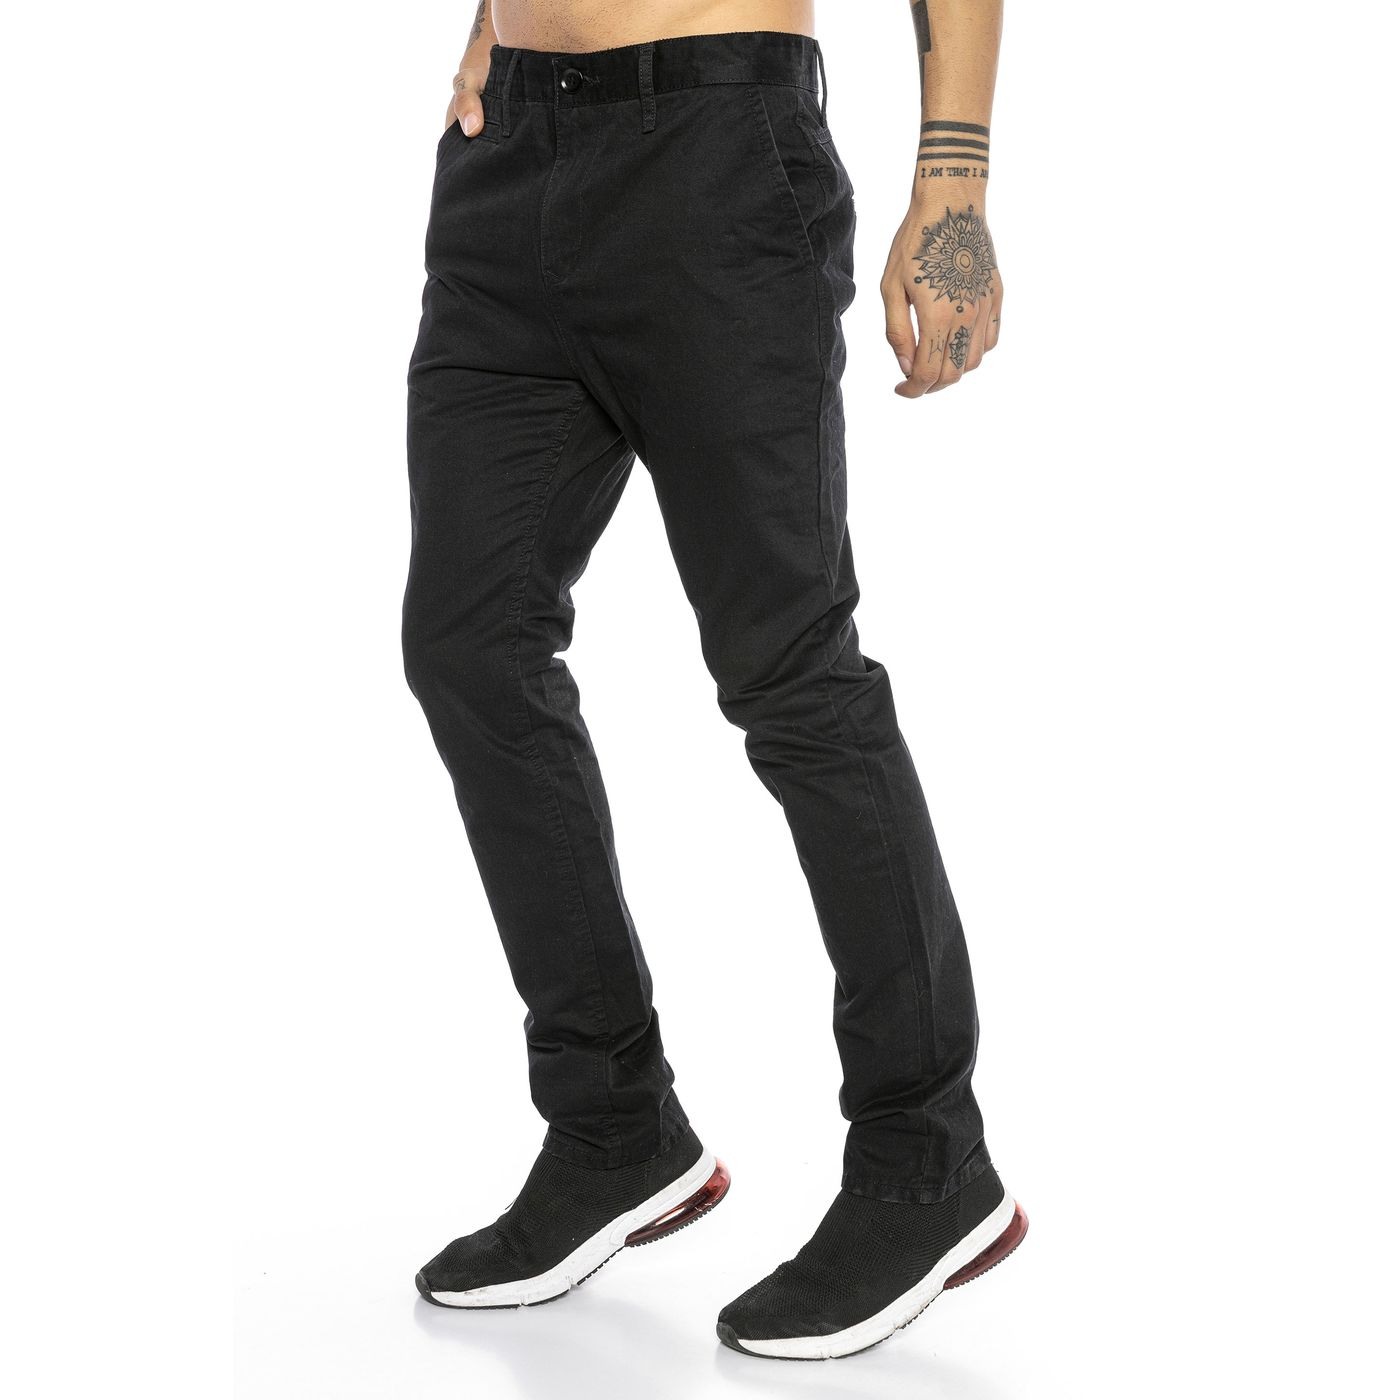 acf684d8df Red Bridge Men BJC Straight Leg Jeans Chino Pant RB-177-black ...